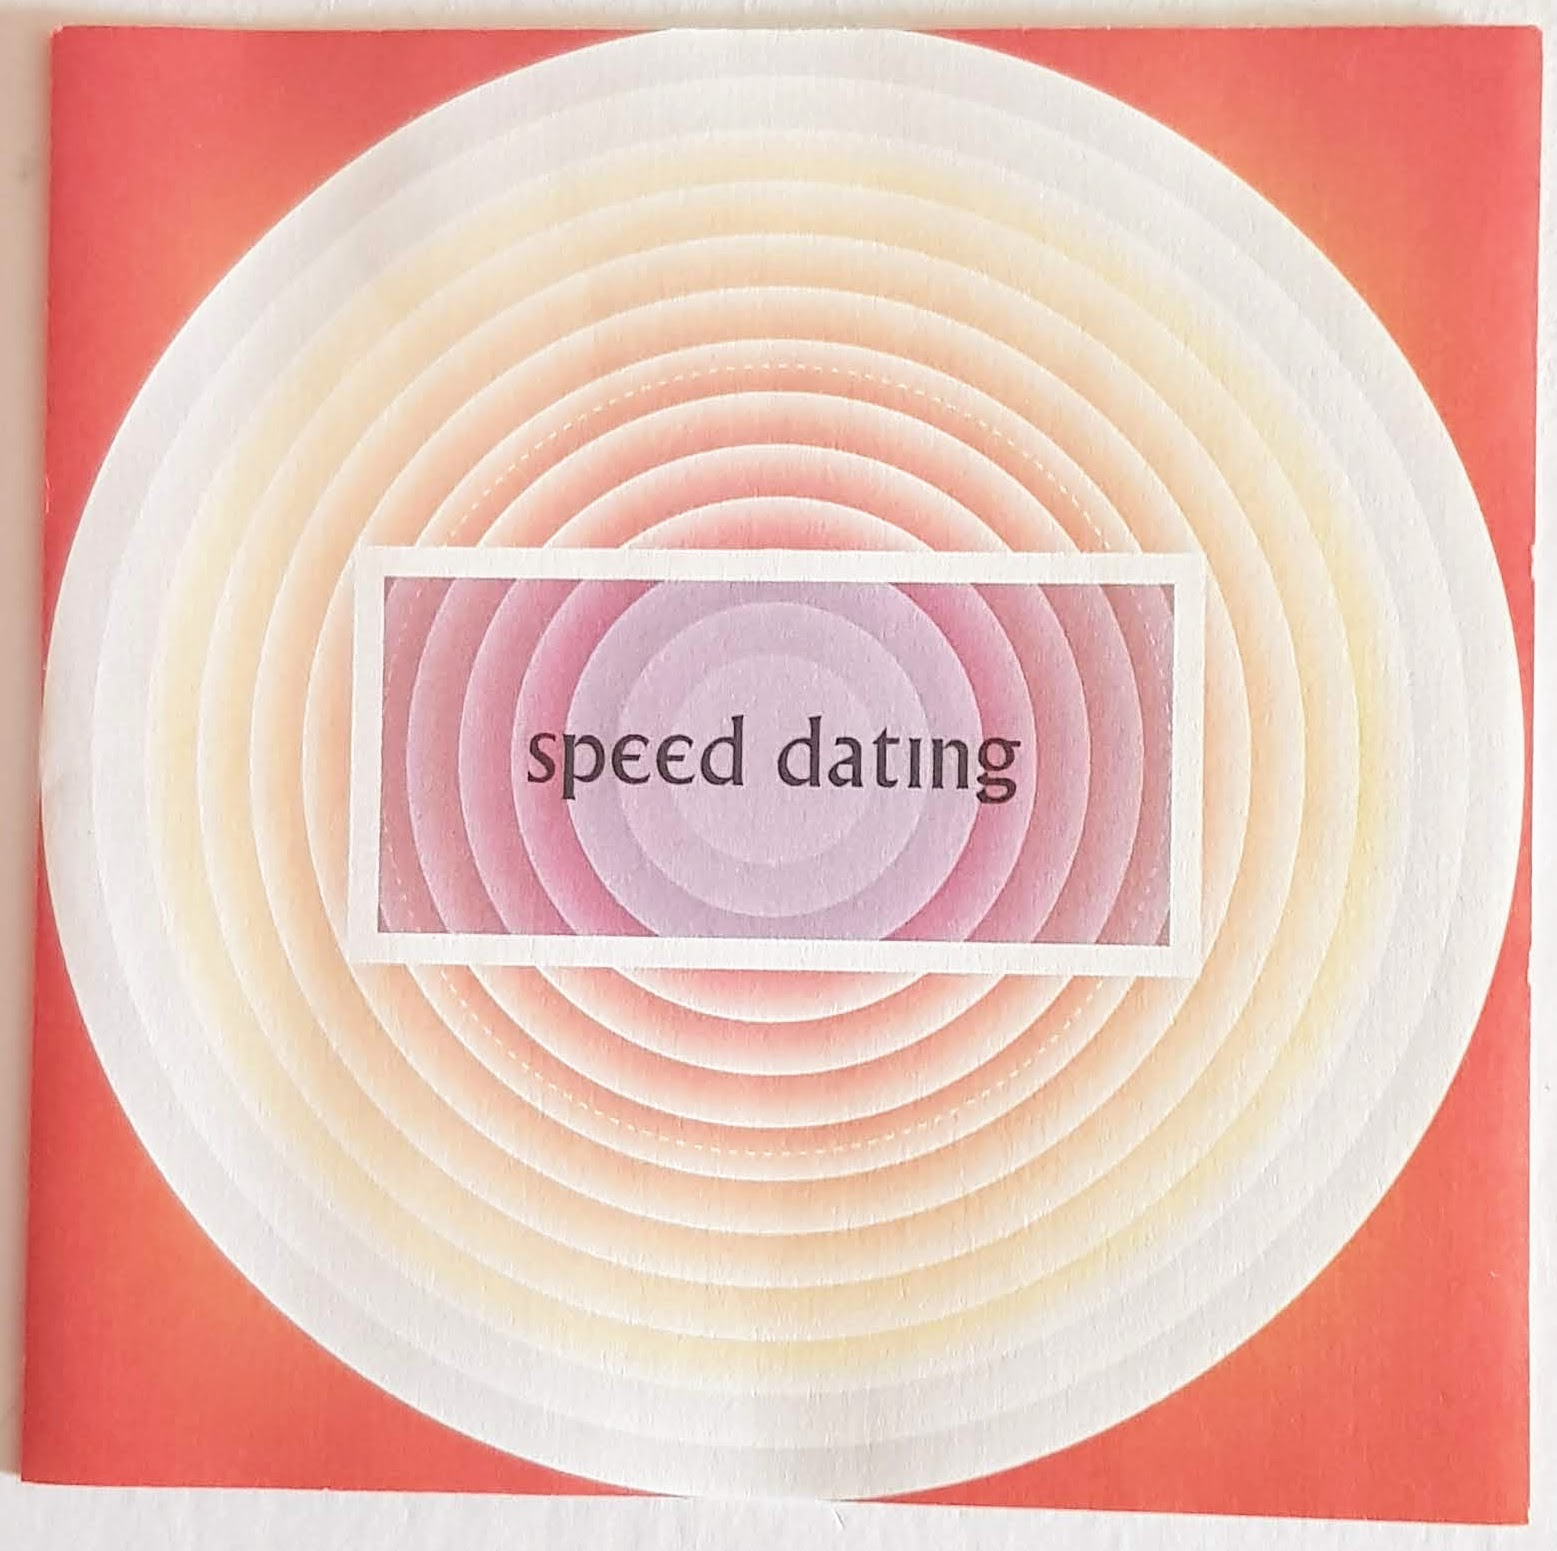 Speed Dating sleeve image